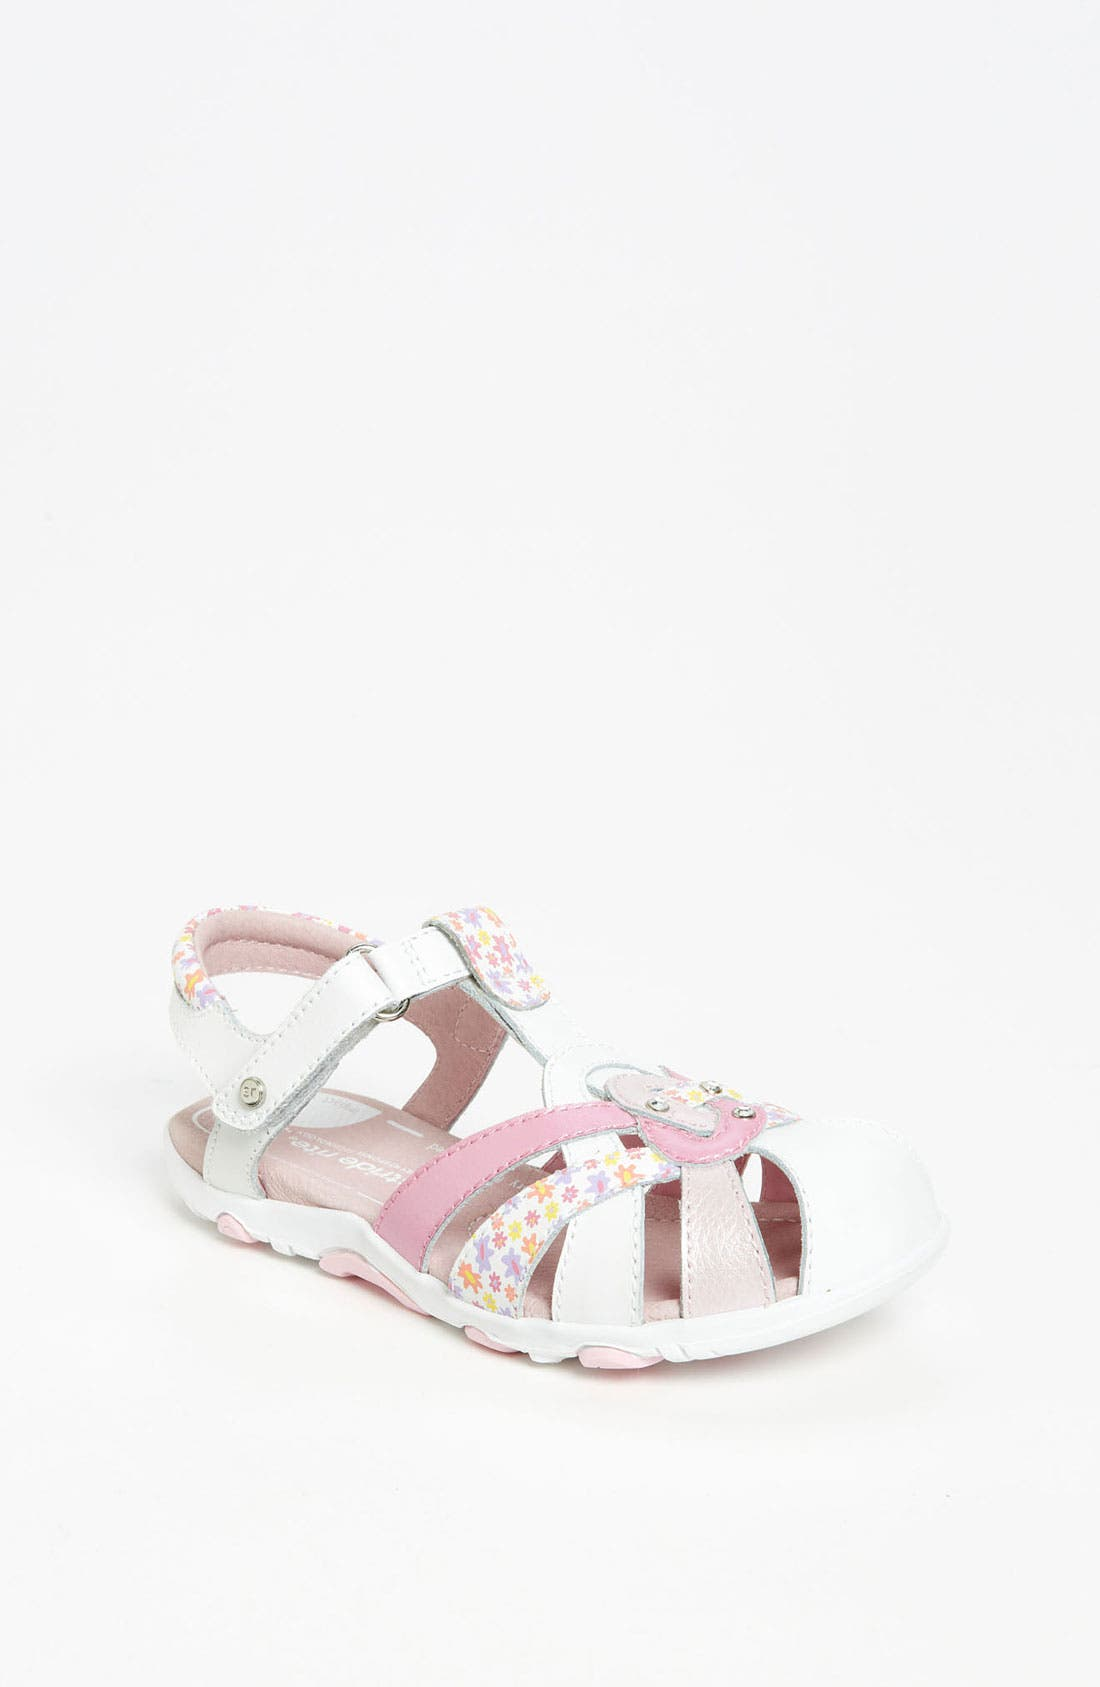 Alternate Image 1 Selected - Stride Rite 'Maybelle' Sandal (Baby, Walker, Toddler & Little Kid)